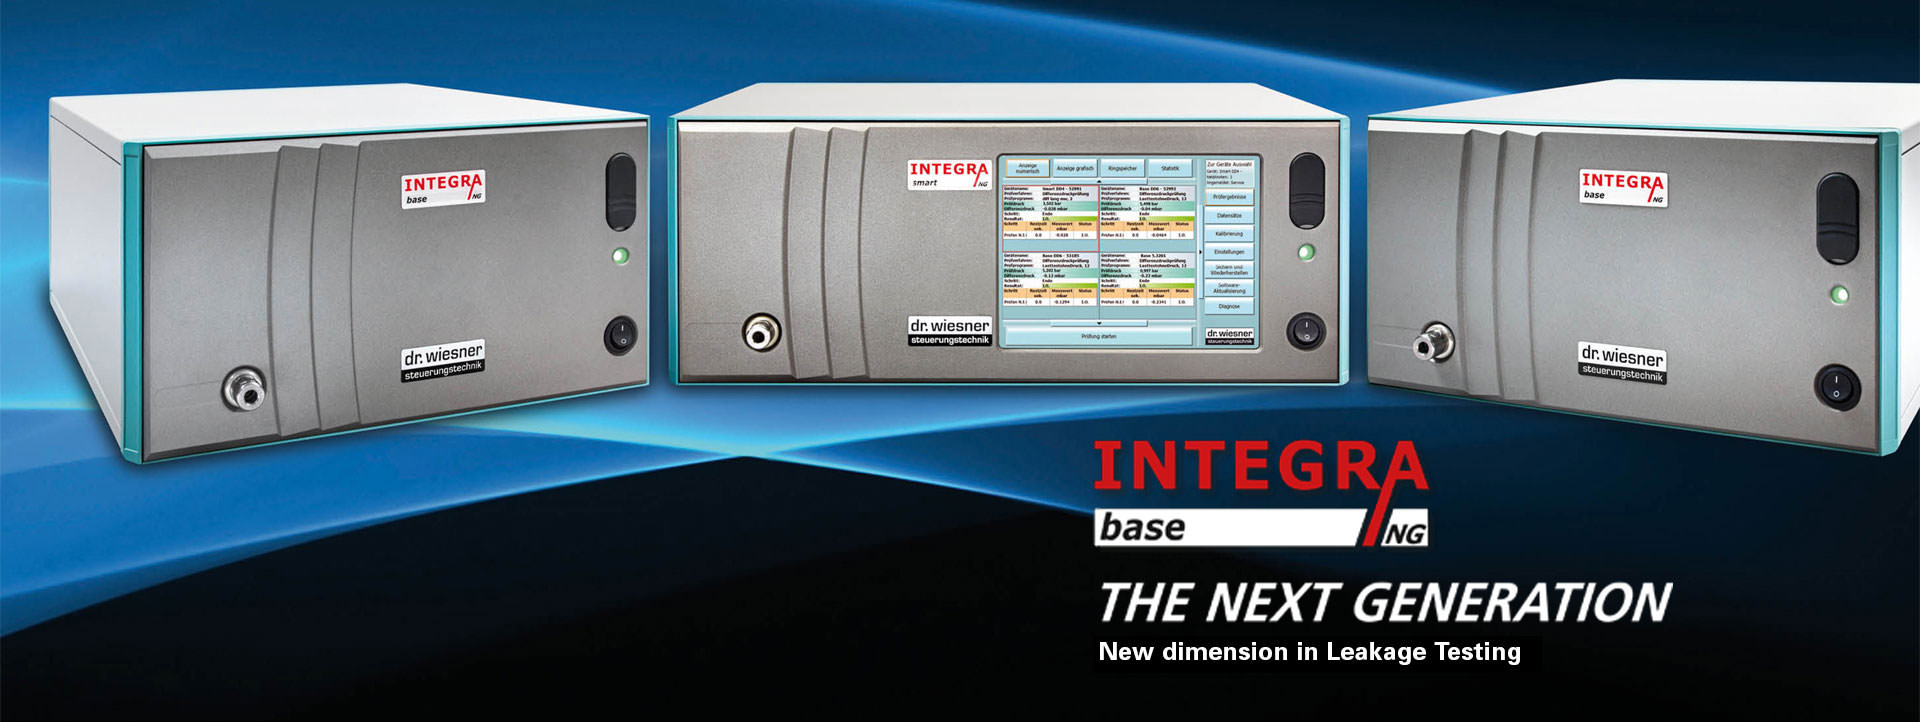 INTEGRA - New dimension in Leakage Testing